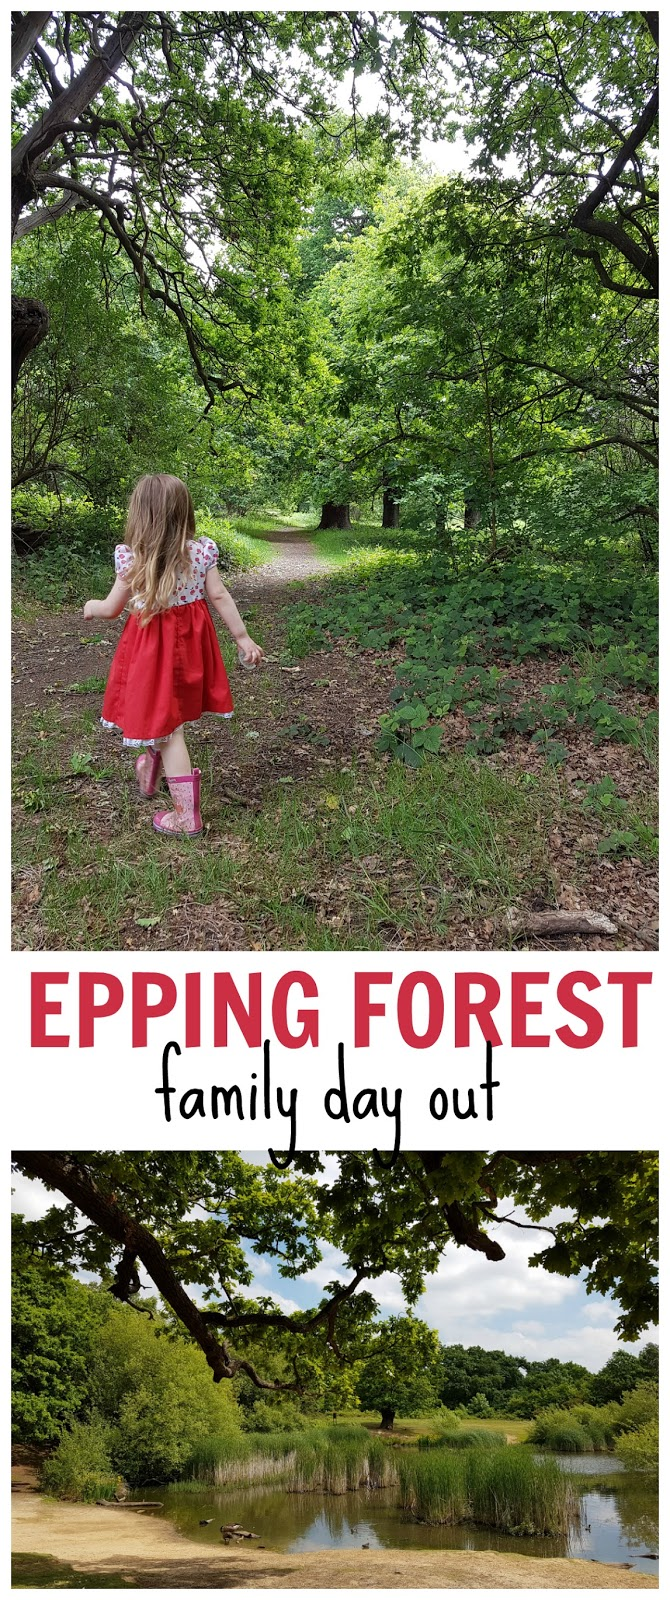 A free family day out at Epping Forest, London - ideas where to go when you are at Chingford, Queen Elizabeth's Hunting Lodge, and lots of pictures of the type of things you might find in Epping Forest, London.